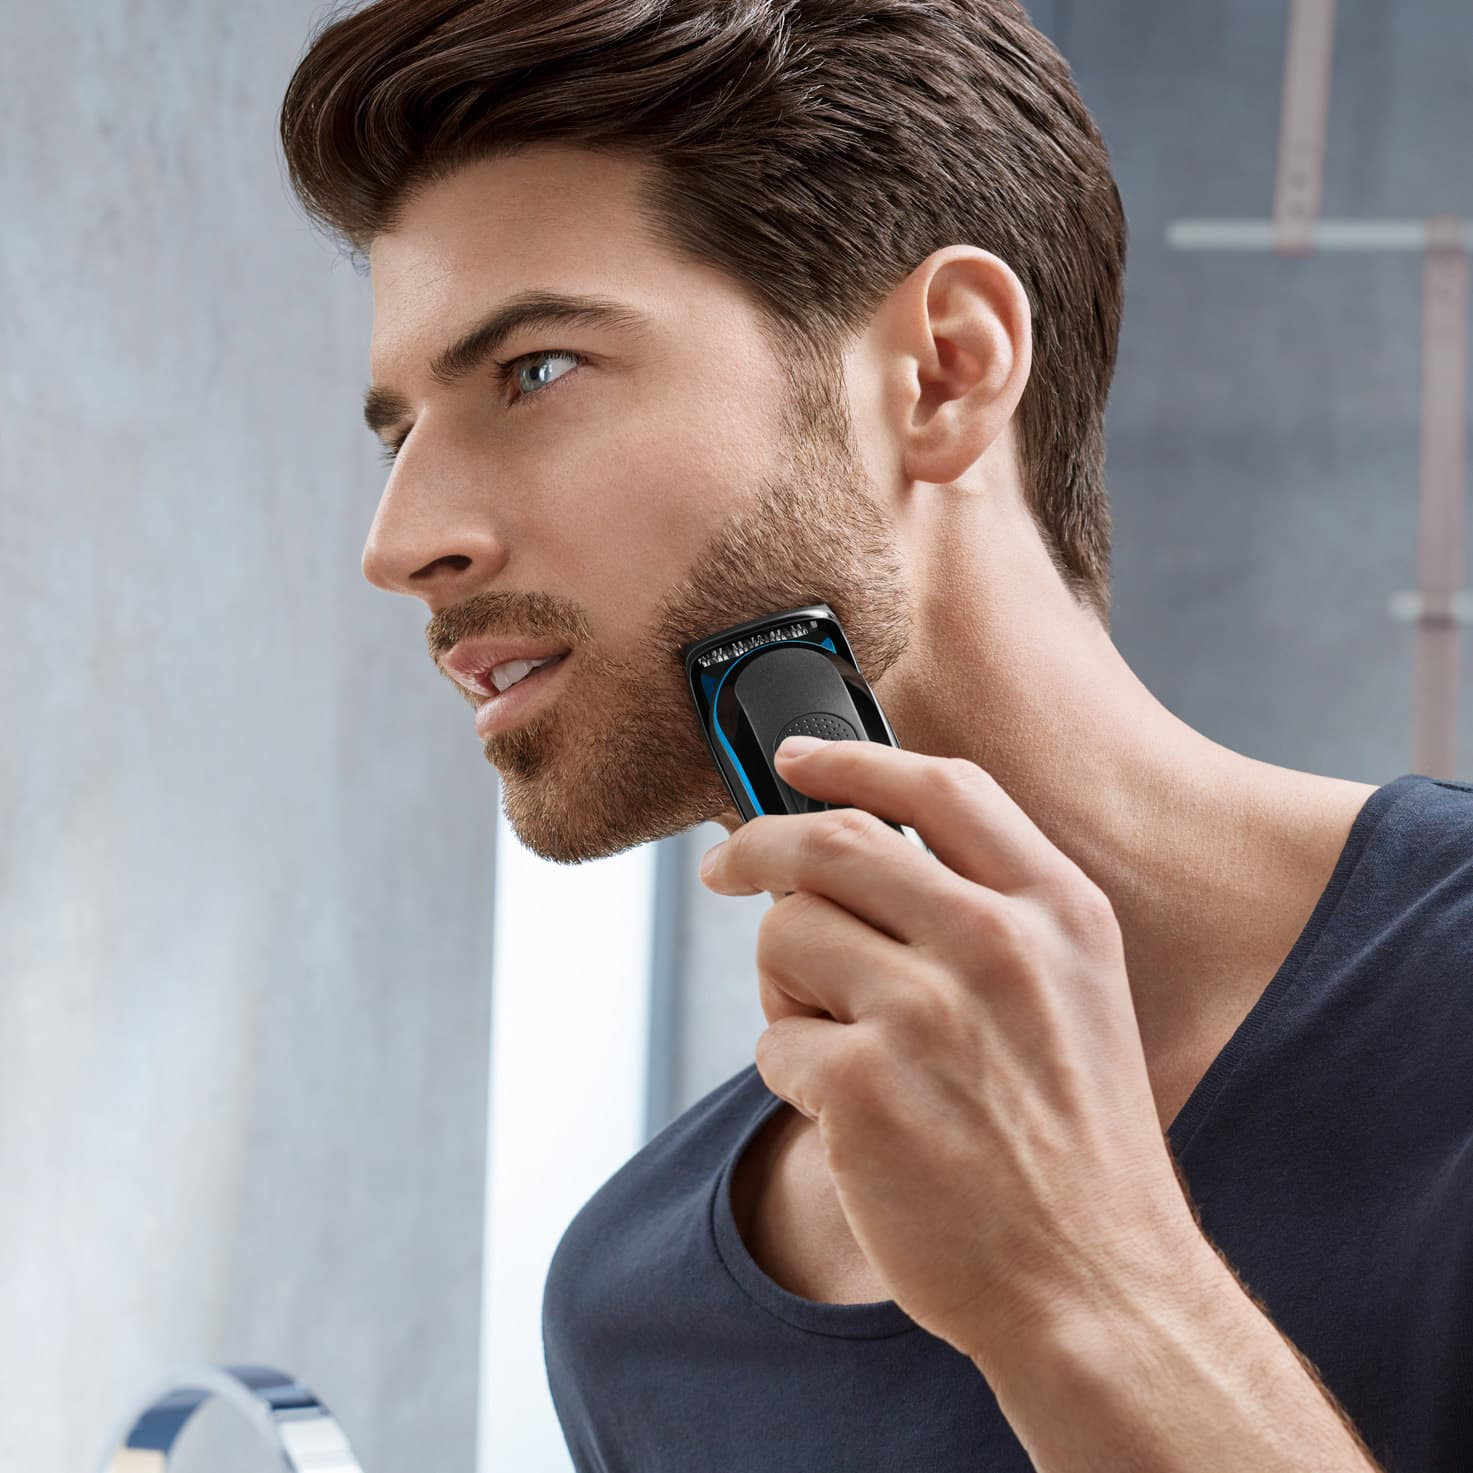 Braun multi grooming kit MGK3040 in use